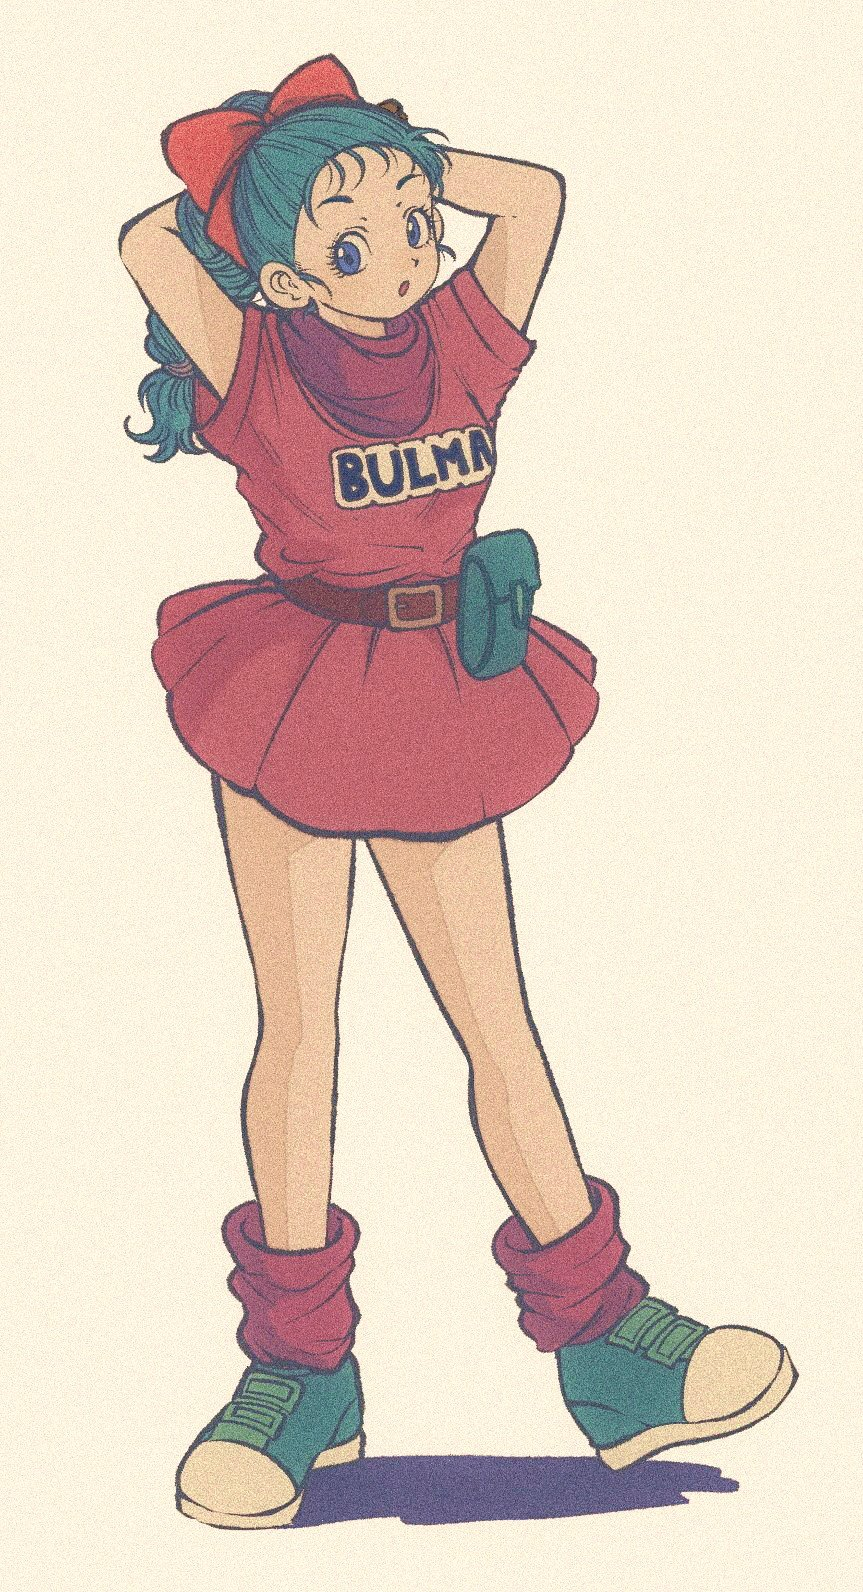 1girl :o arms_behind_head arms_up bare_legs beige_background belt blue_eyes blue_footwear blue_hair braid braided_ponytail breasts bulma character_name clothes_writing dragon_ball dragon_ball_(classic) dress expressionless eyelashes facing_viewer fanny_pack full_body hair_ribbon highres looking_away loose_socks parted_lips pikurusu pink_dress purple_legwear purple_neckwear purple_scarf red_ribbon ribbon scarf shadow shoes short_dress short_sleeves simple_background small_breasts sneakers socks solo standing standing_on_one_leg tareme